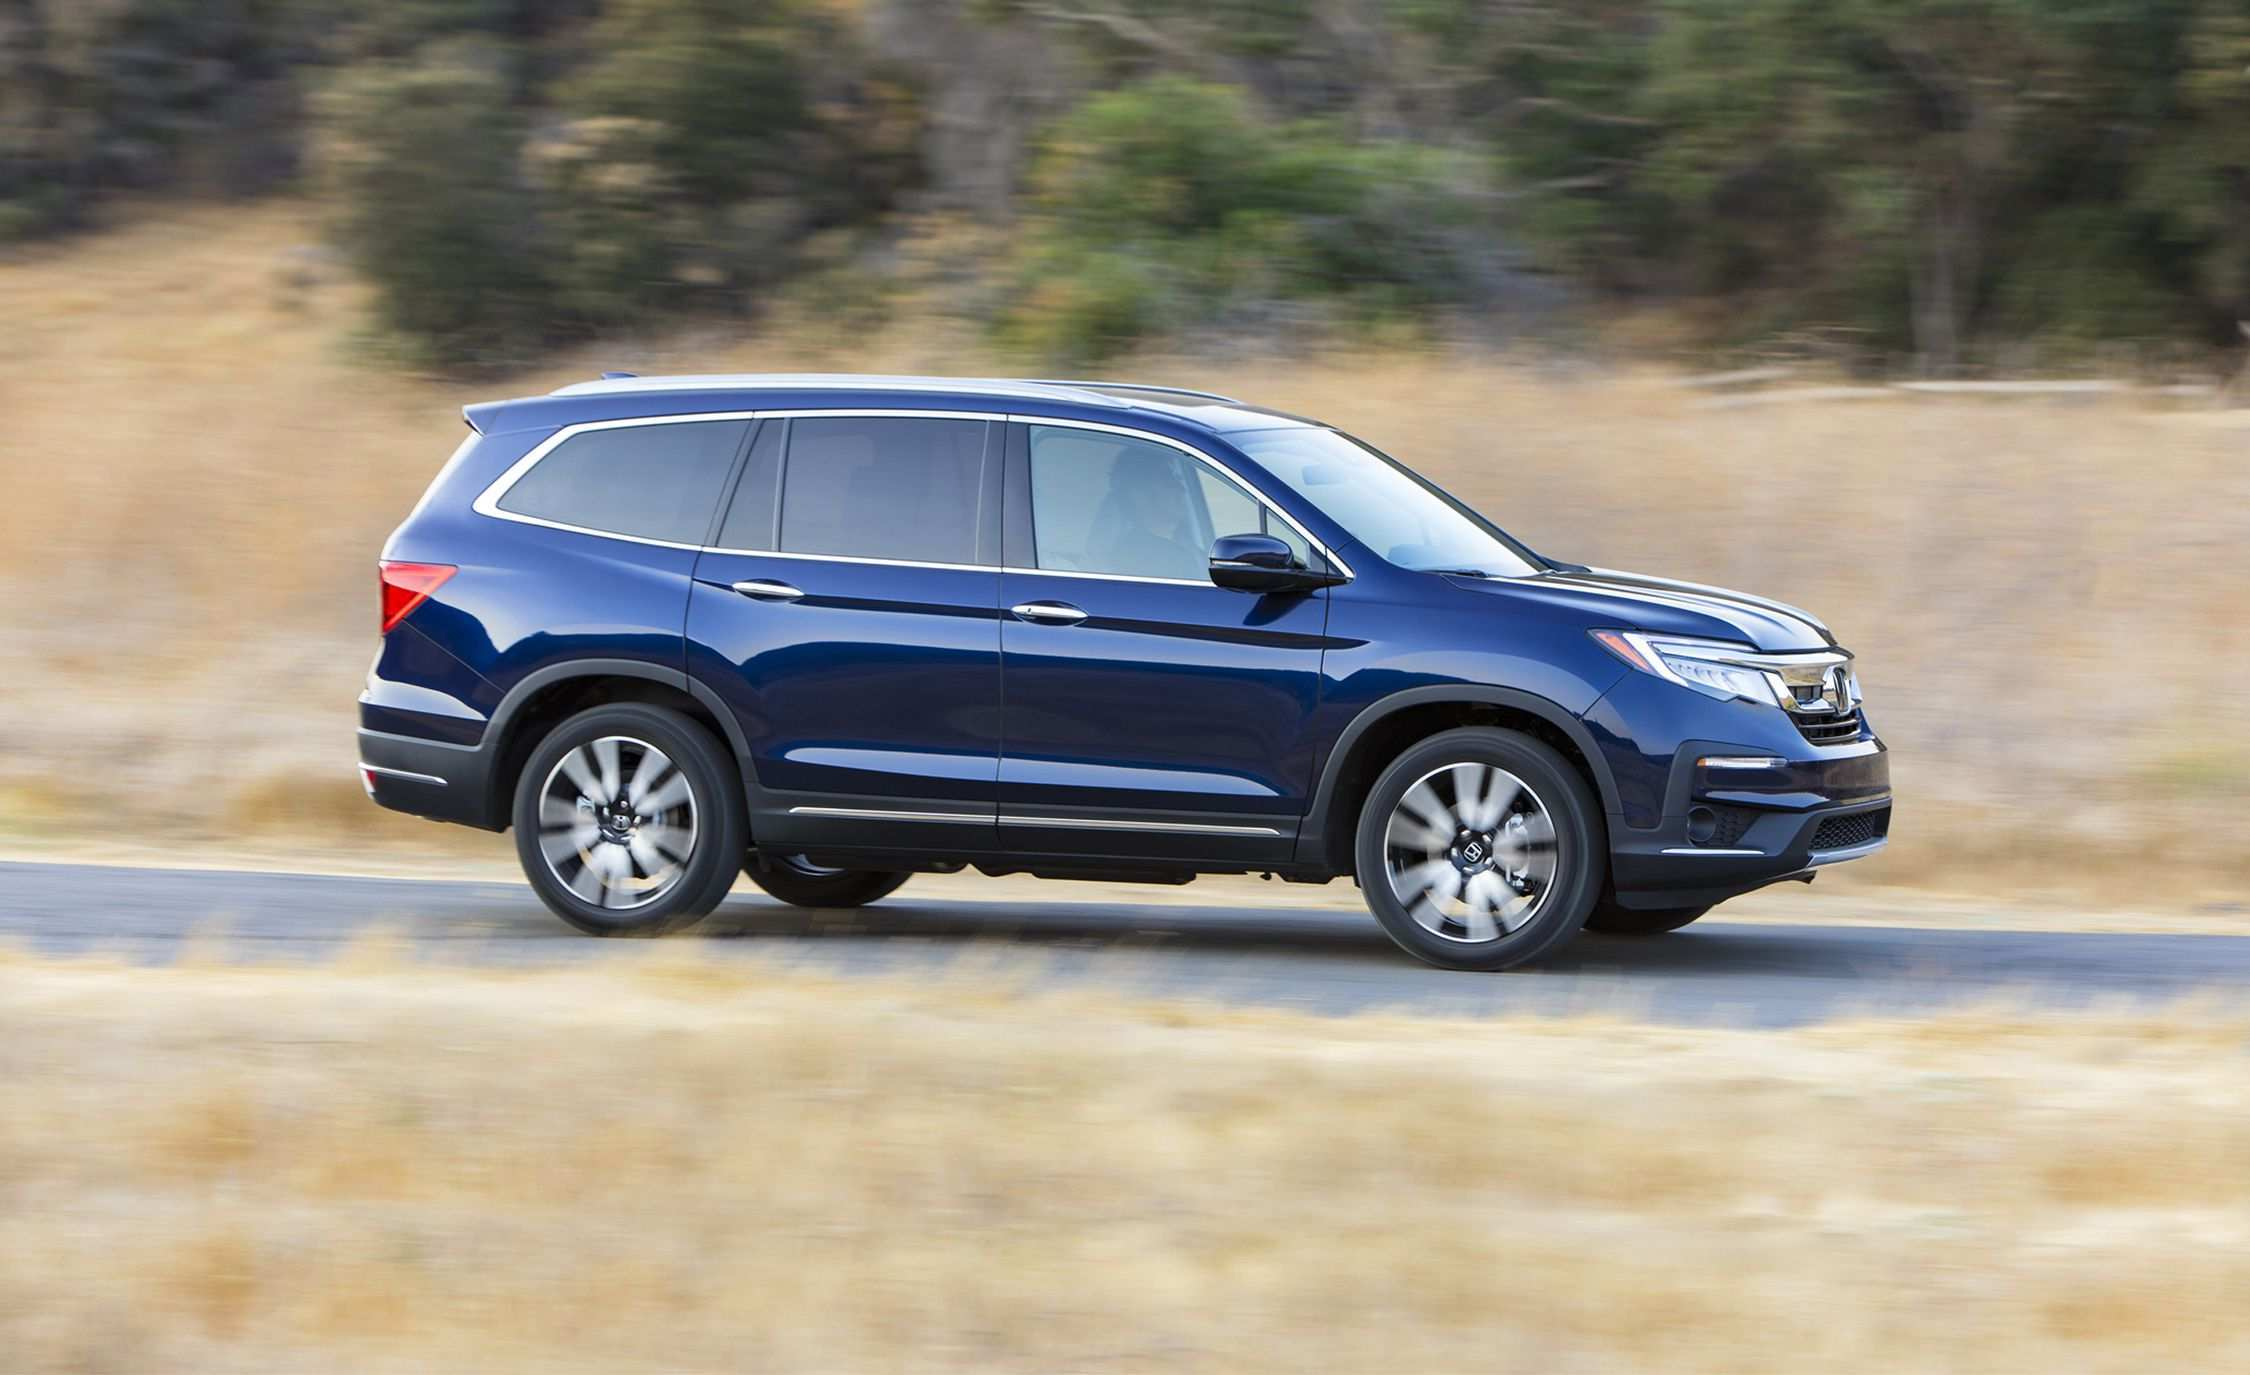 29 Best Review 2019 Honda Pilot Configurations with 2019 Honda Pilot